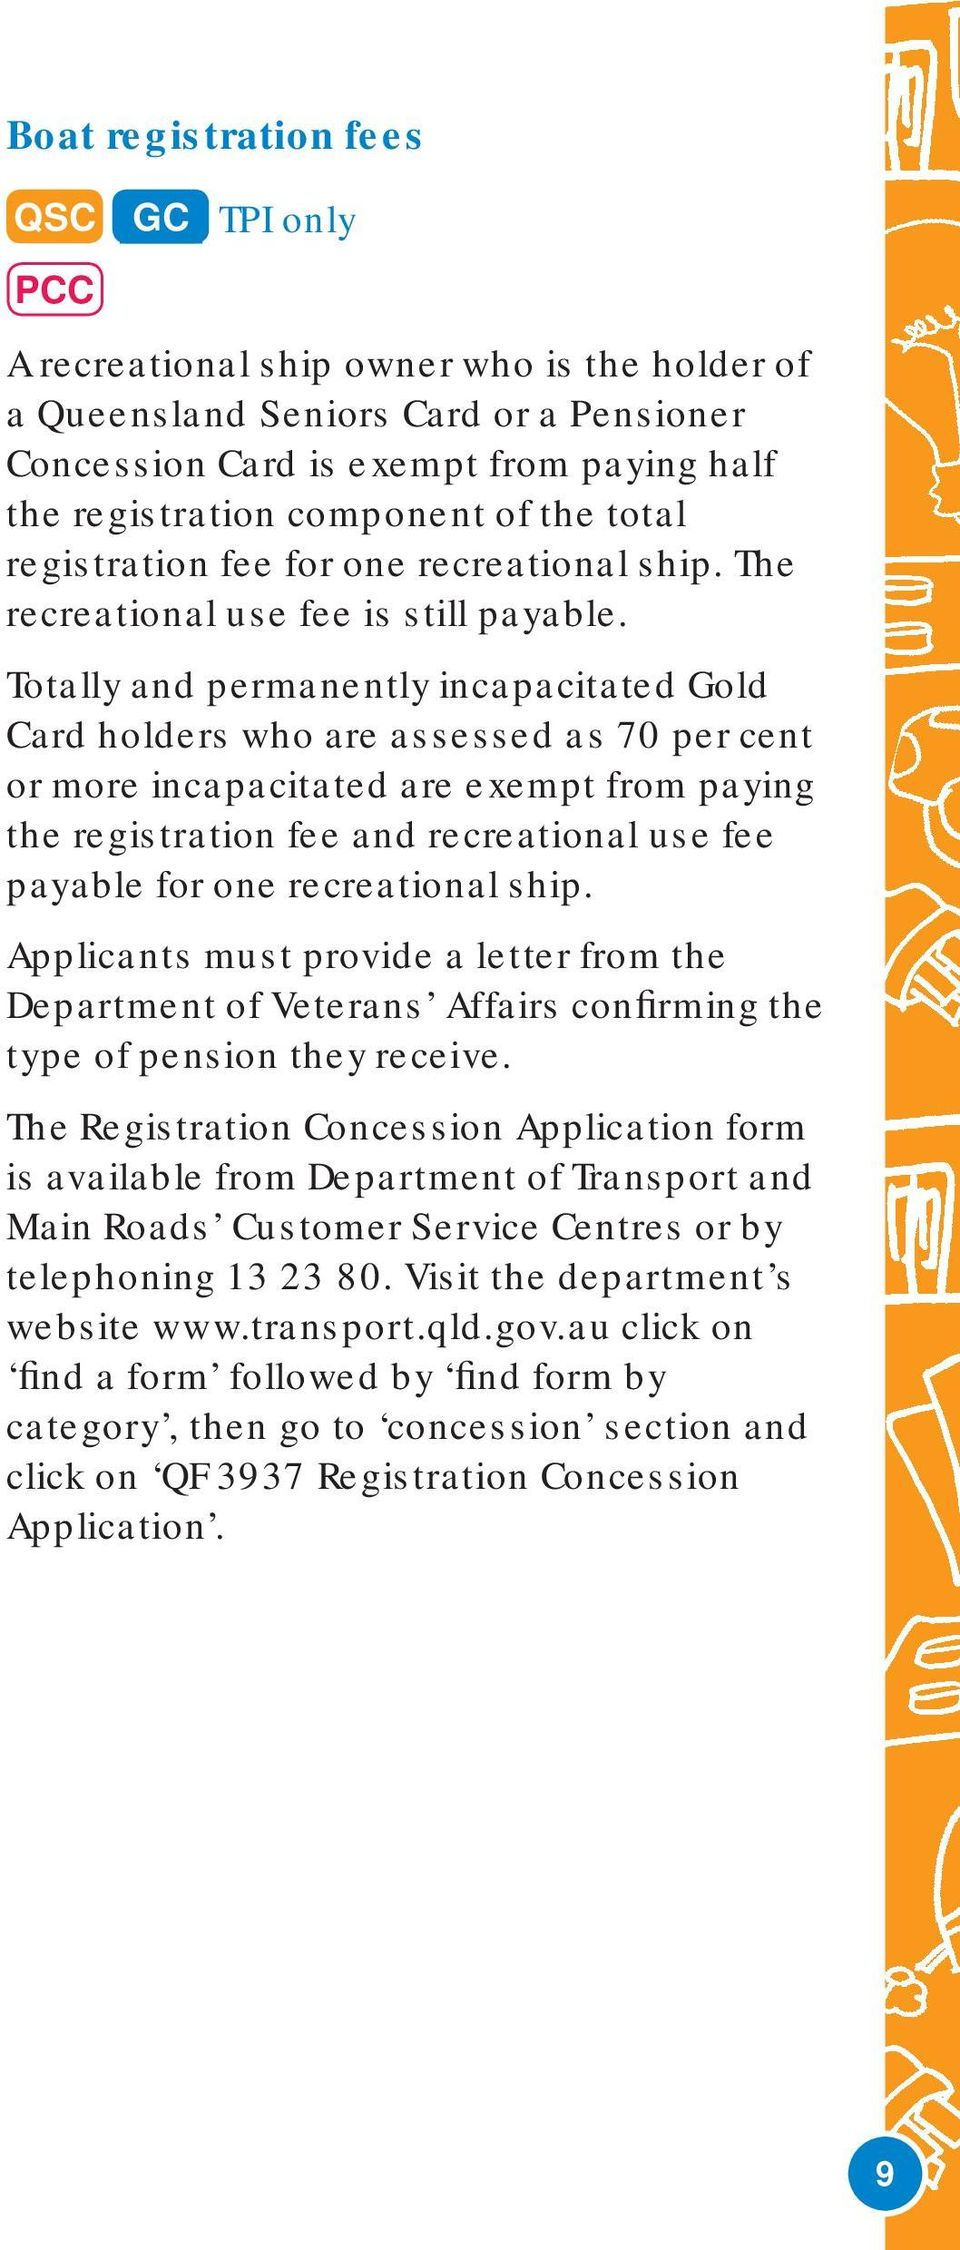 Totally and permanently incapacitated Gold Card holders who are assessed as 70 per cent or more incapacitated are exempt from paying the registration fee and recreational use fee payable for one